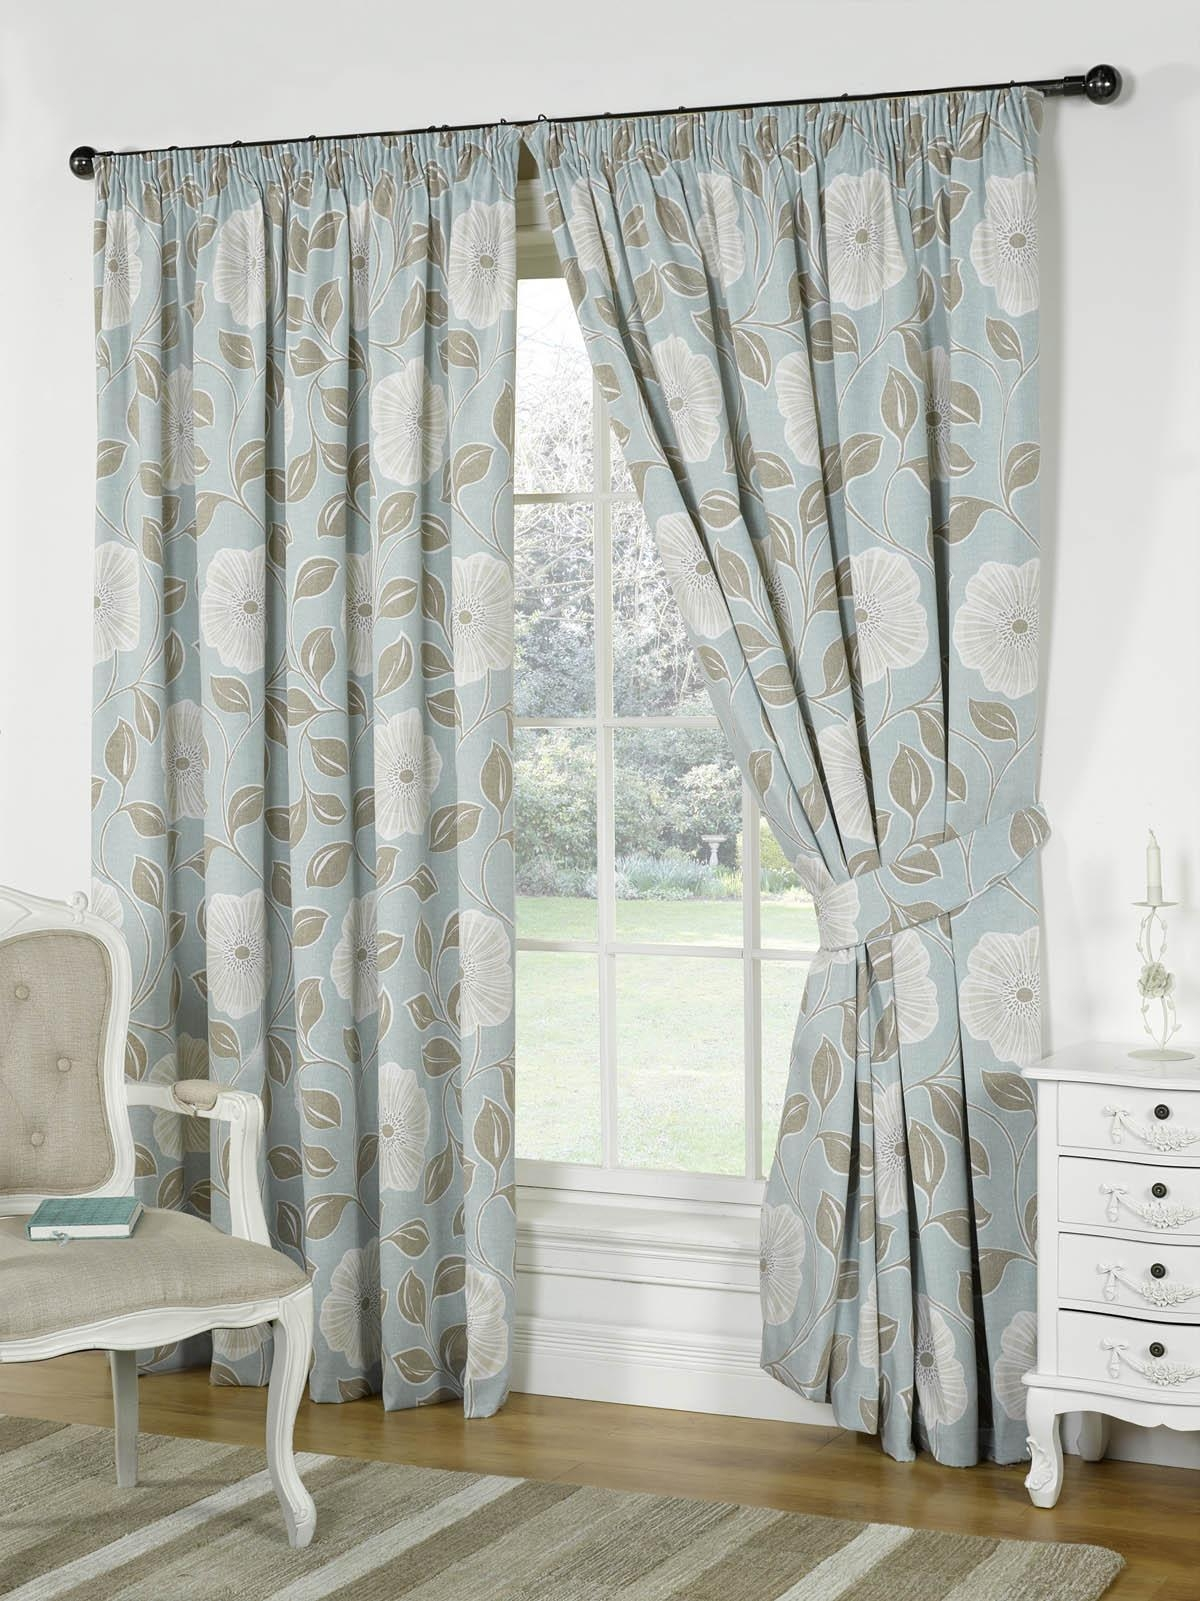 Duck Egg Blackout Curtains Within Duck Egg Blue Blackout Curtains (Image 3 of 15)